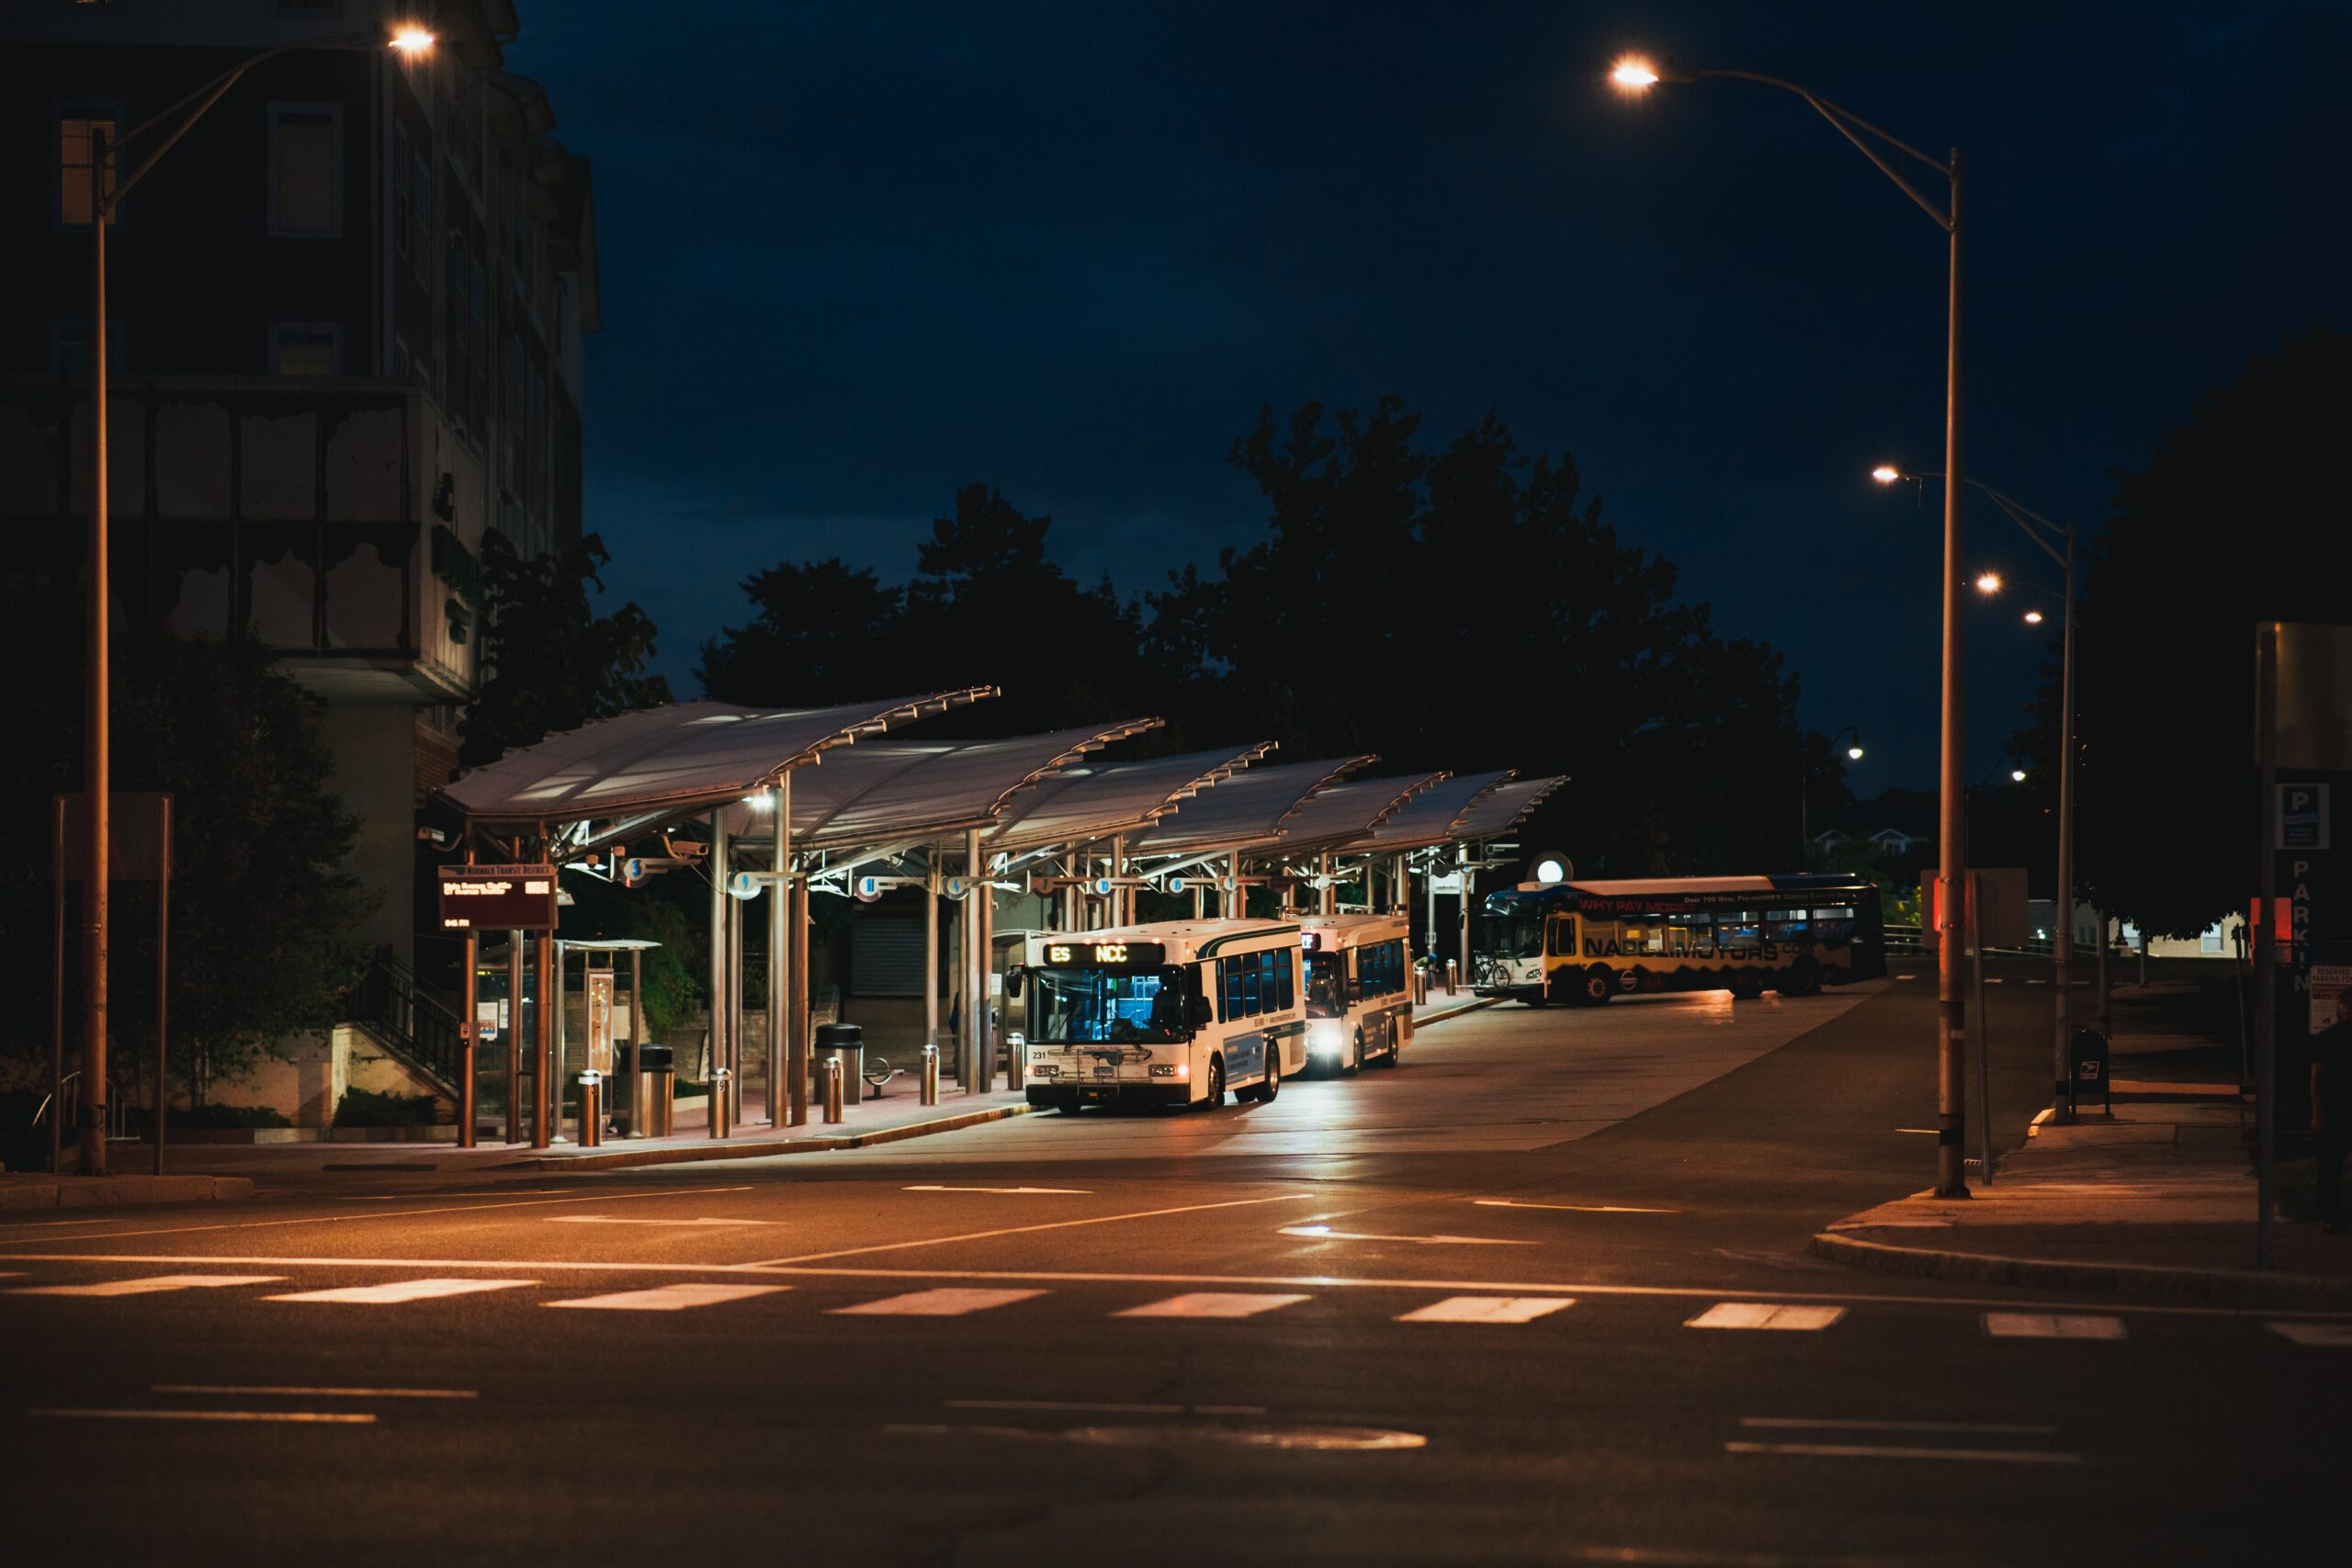 Photo of a bus station at night